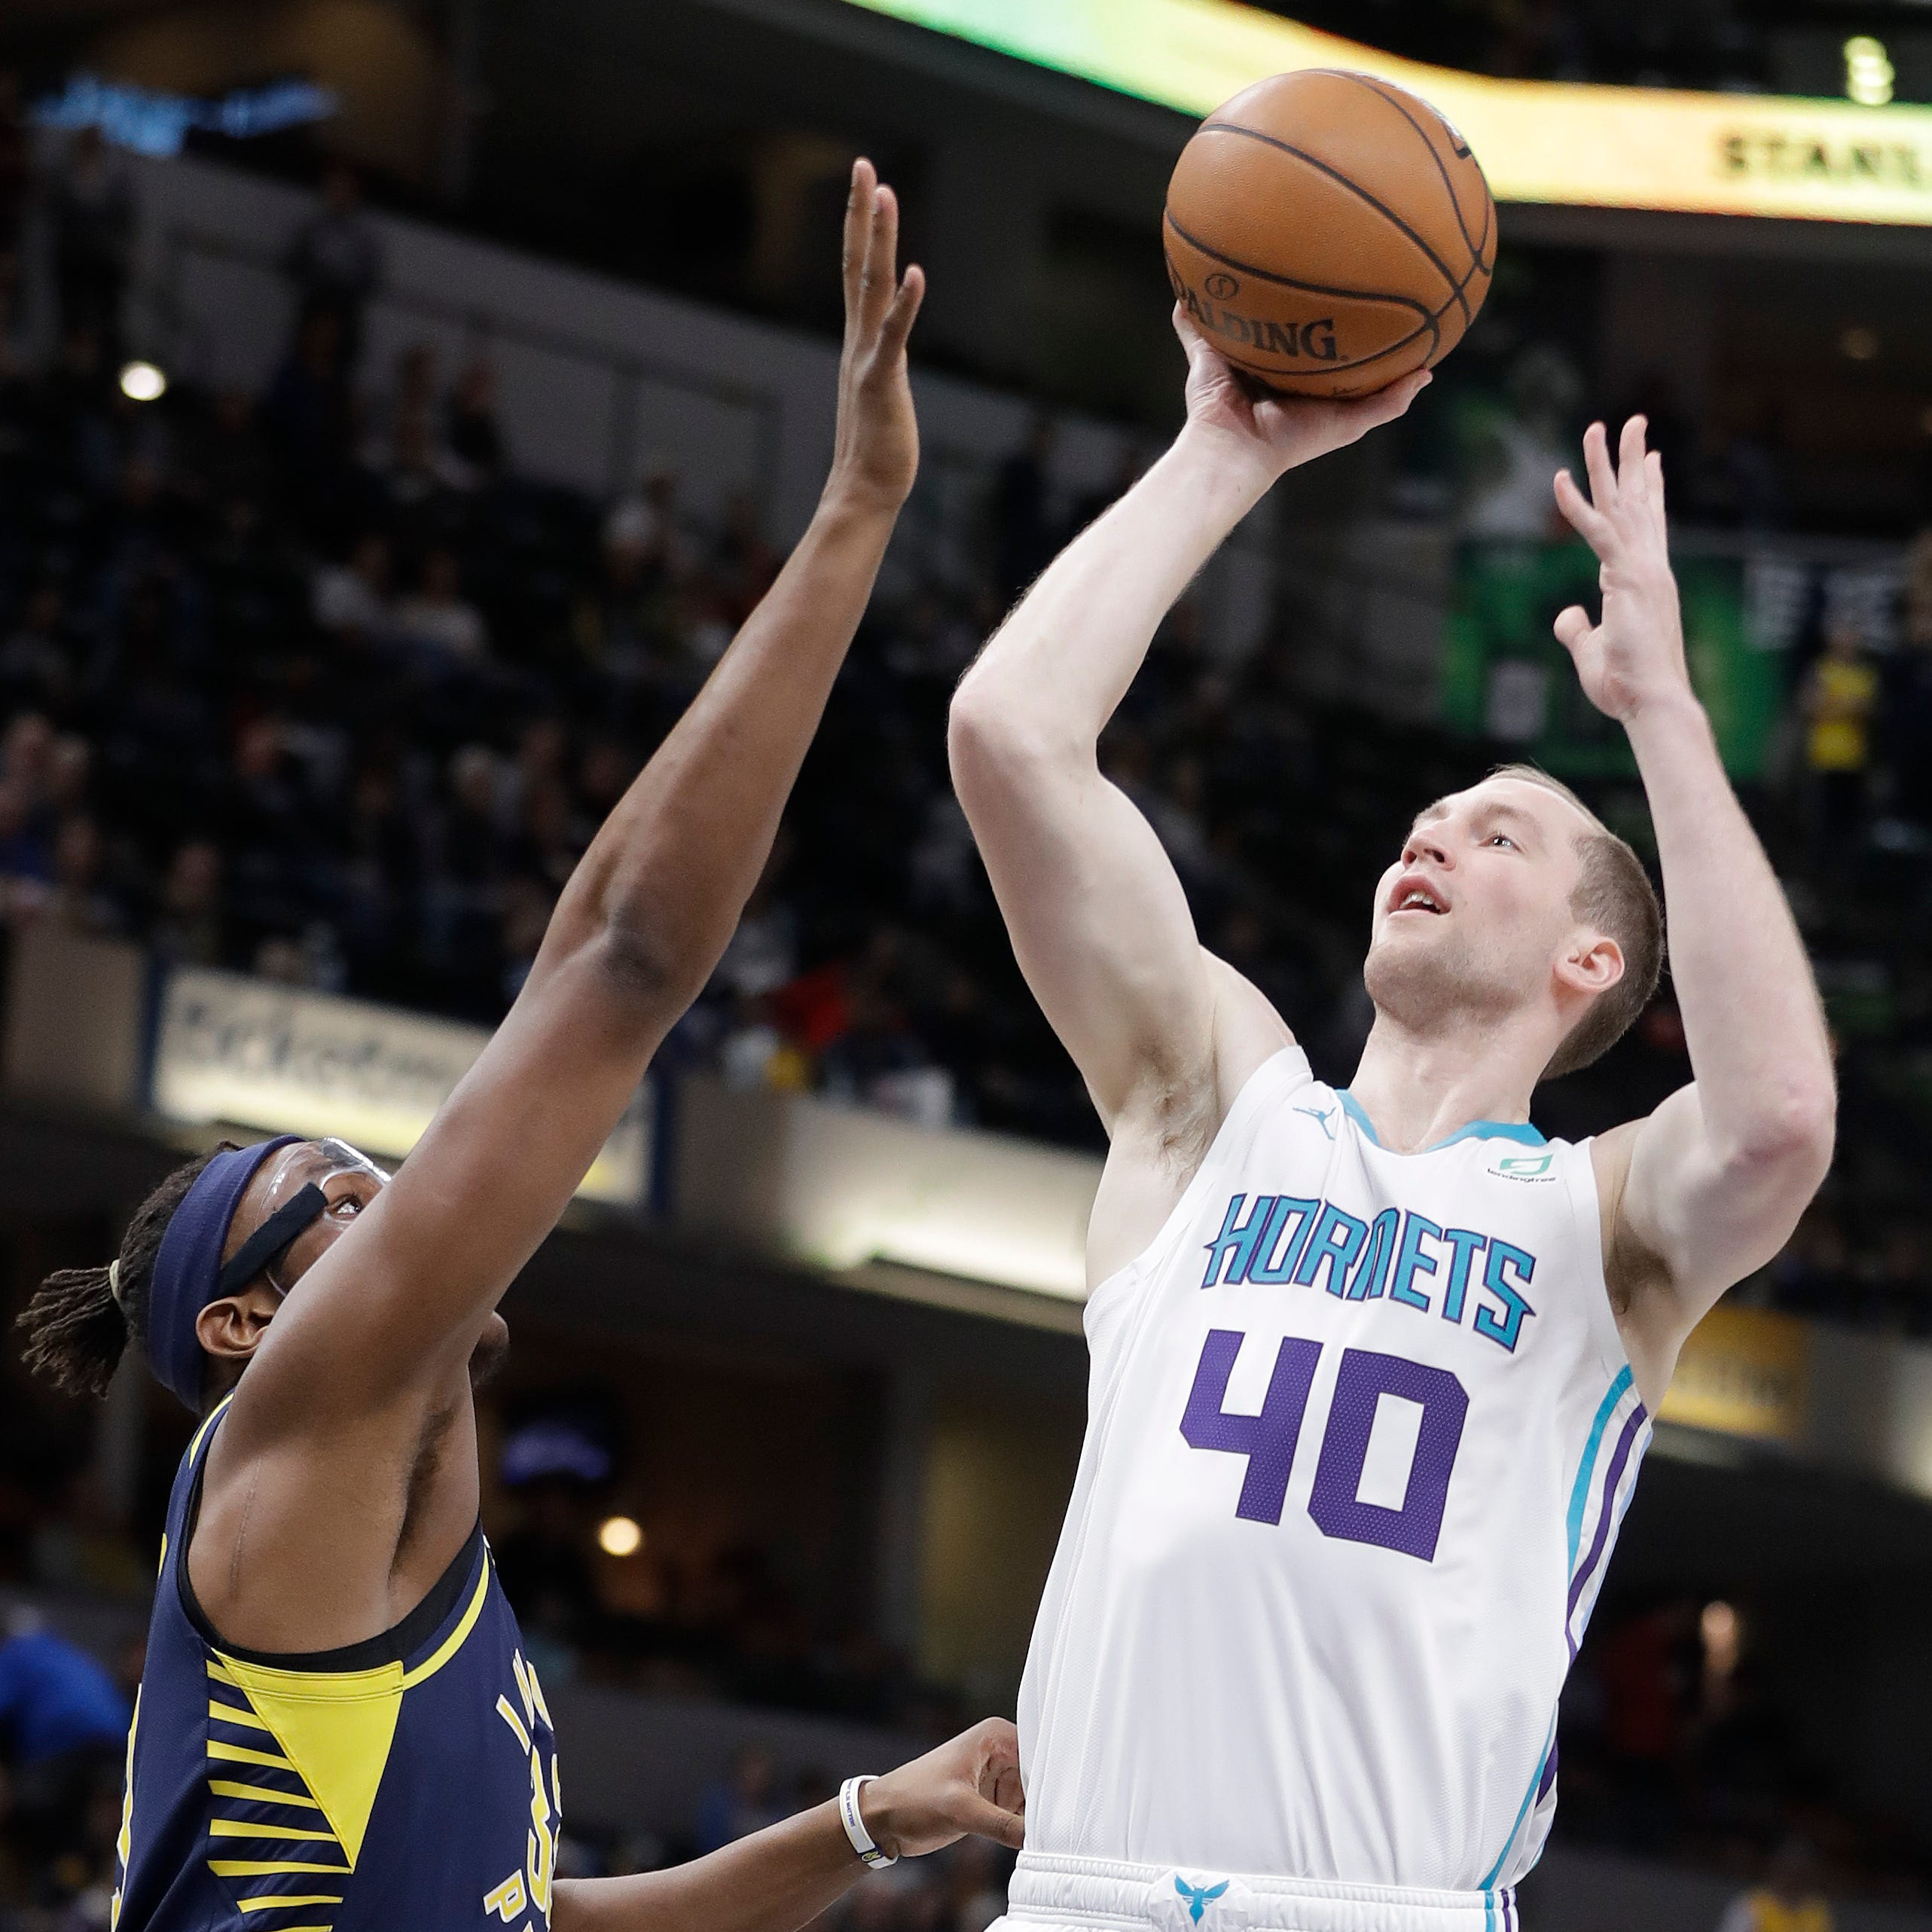 Cody Zeller returns to Washington, Indiana, and he's got jokes!